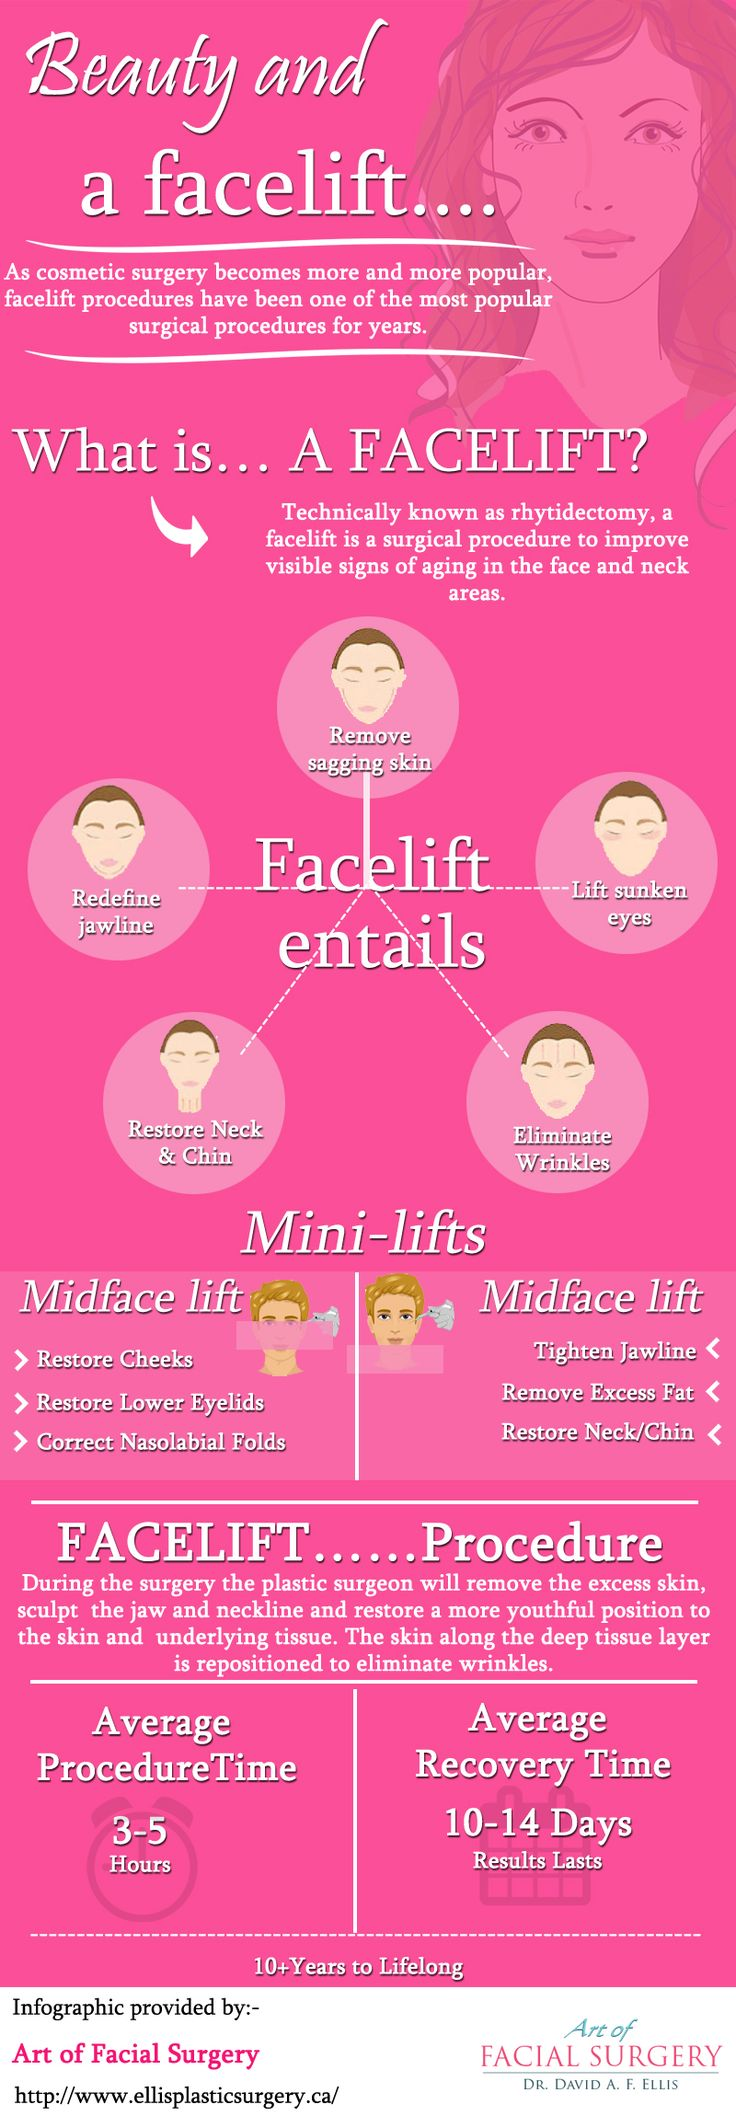 Looking for Botox Toronto specialists? We are experts inToronto Plastic Surgery, and provide you with the state-of-the-art in Toronto Facial Surgery. For more details Log on: http://www.ellisplasticsurgery.ca/